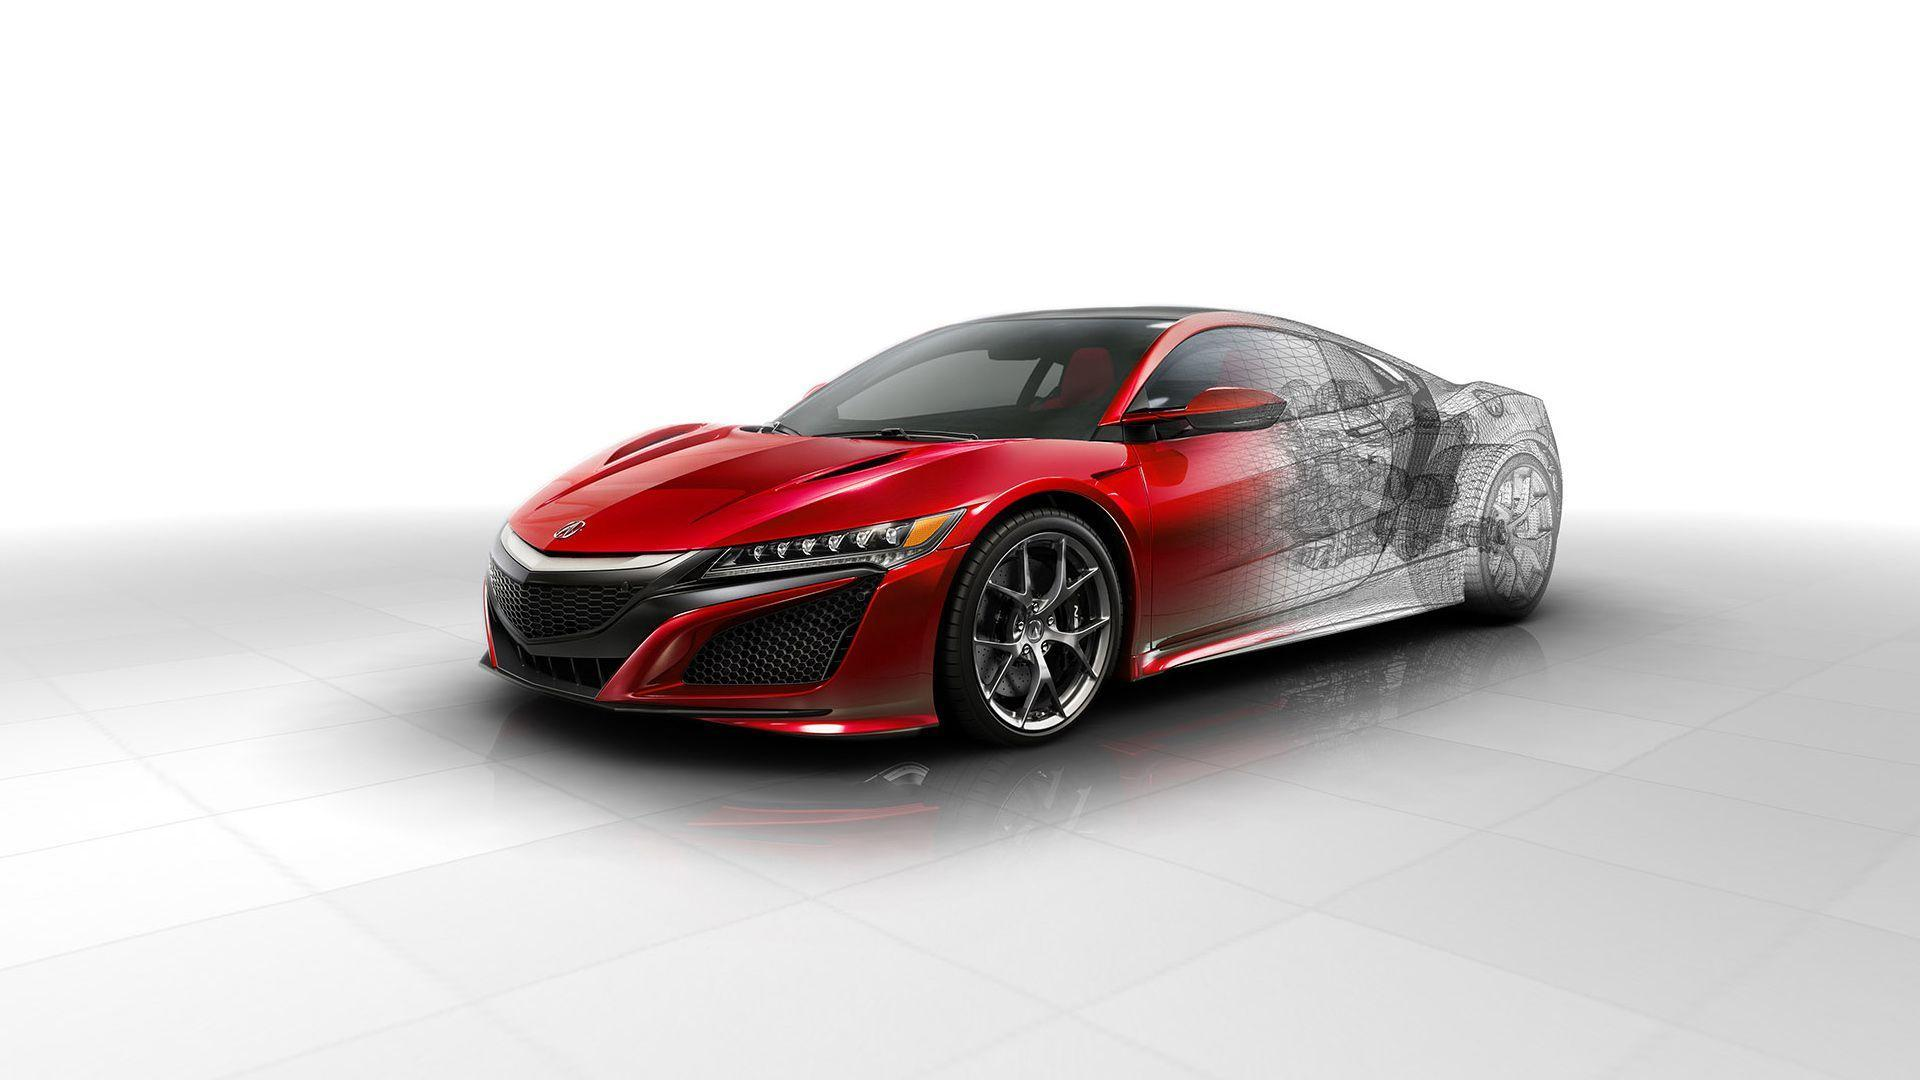 2016 Acura NSX Technical Wallpapers